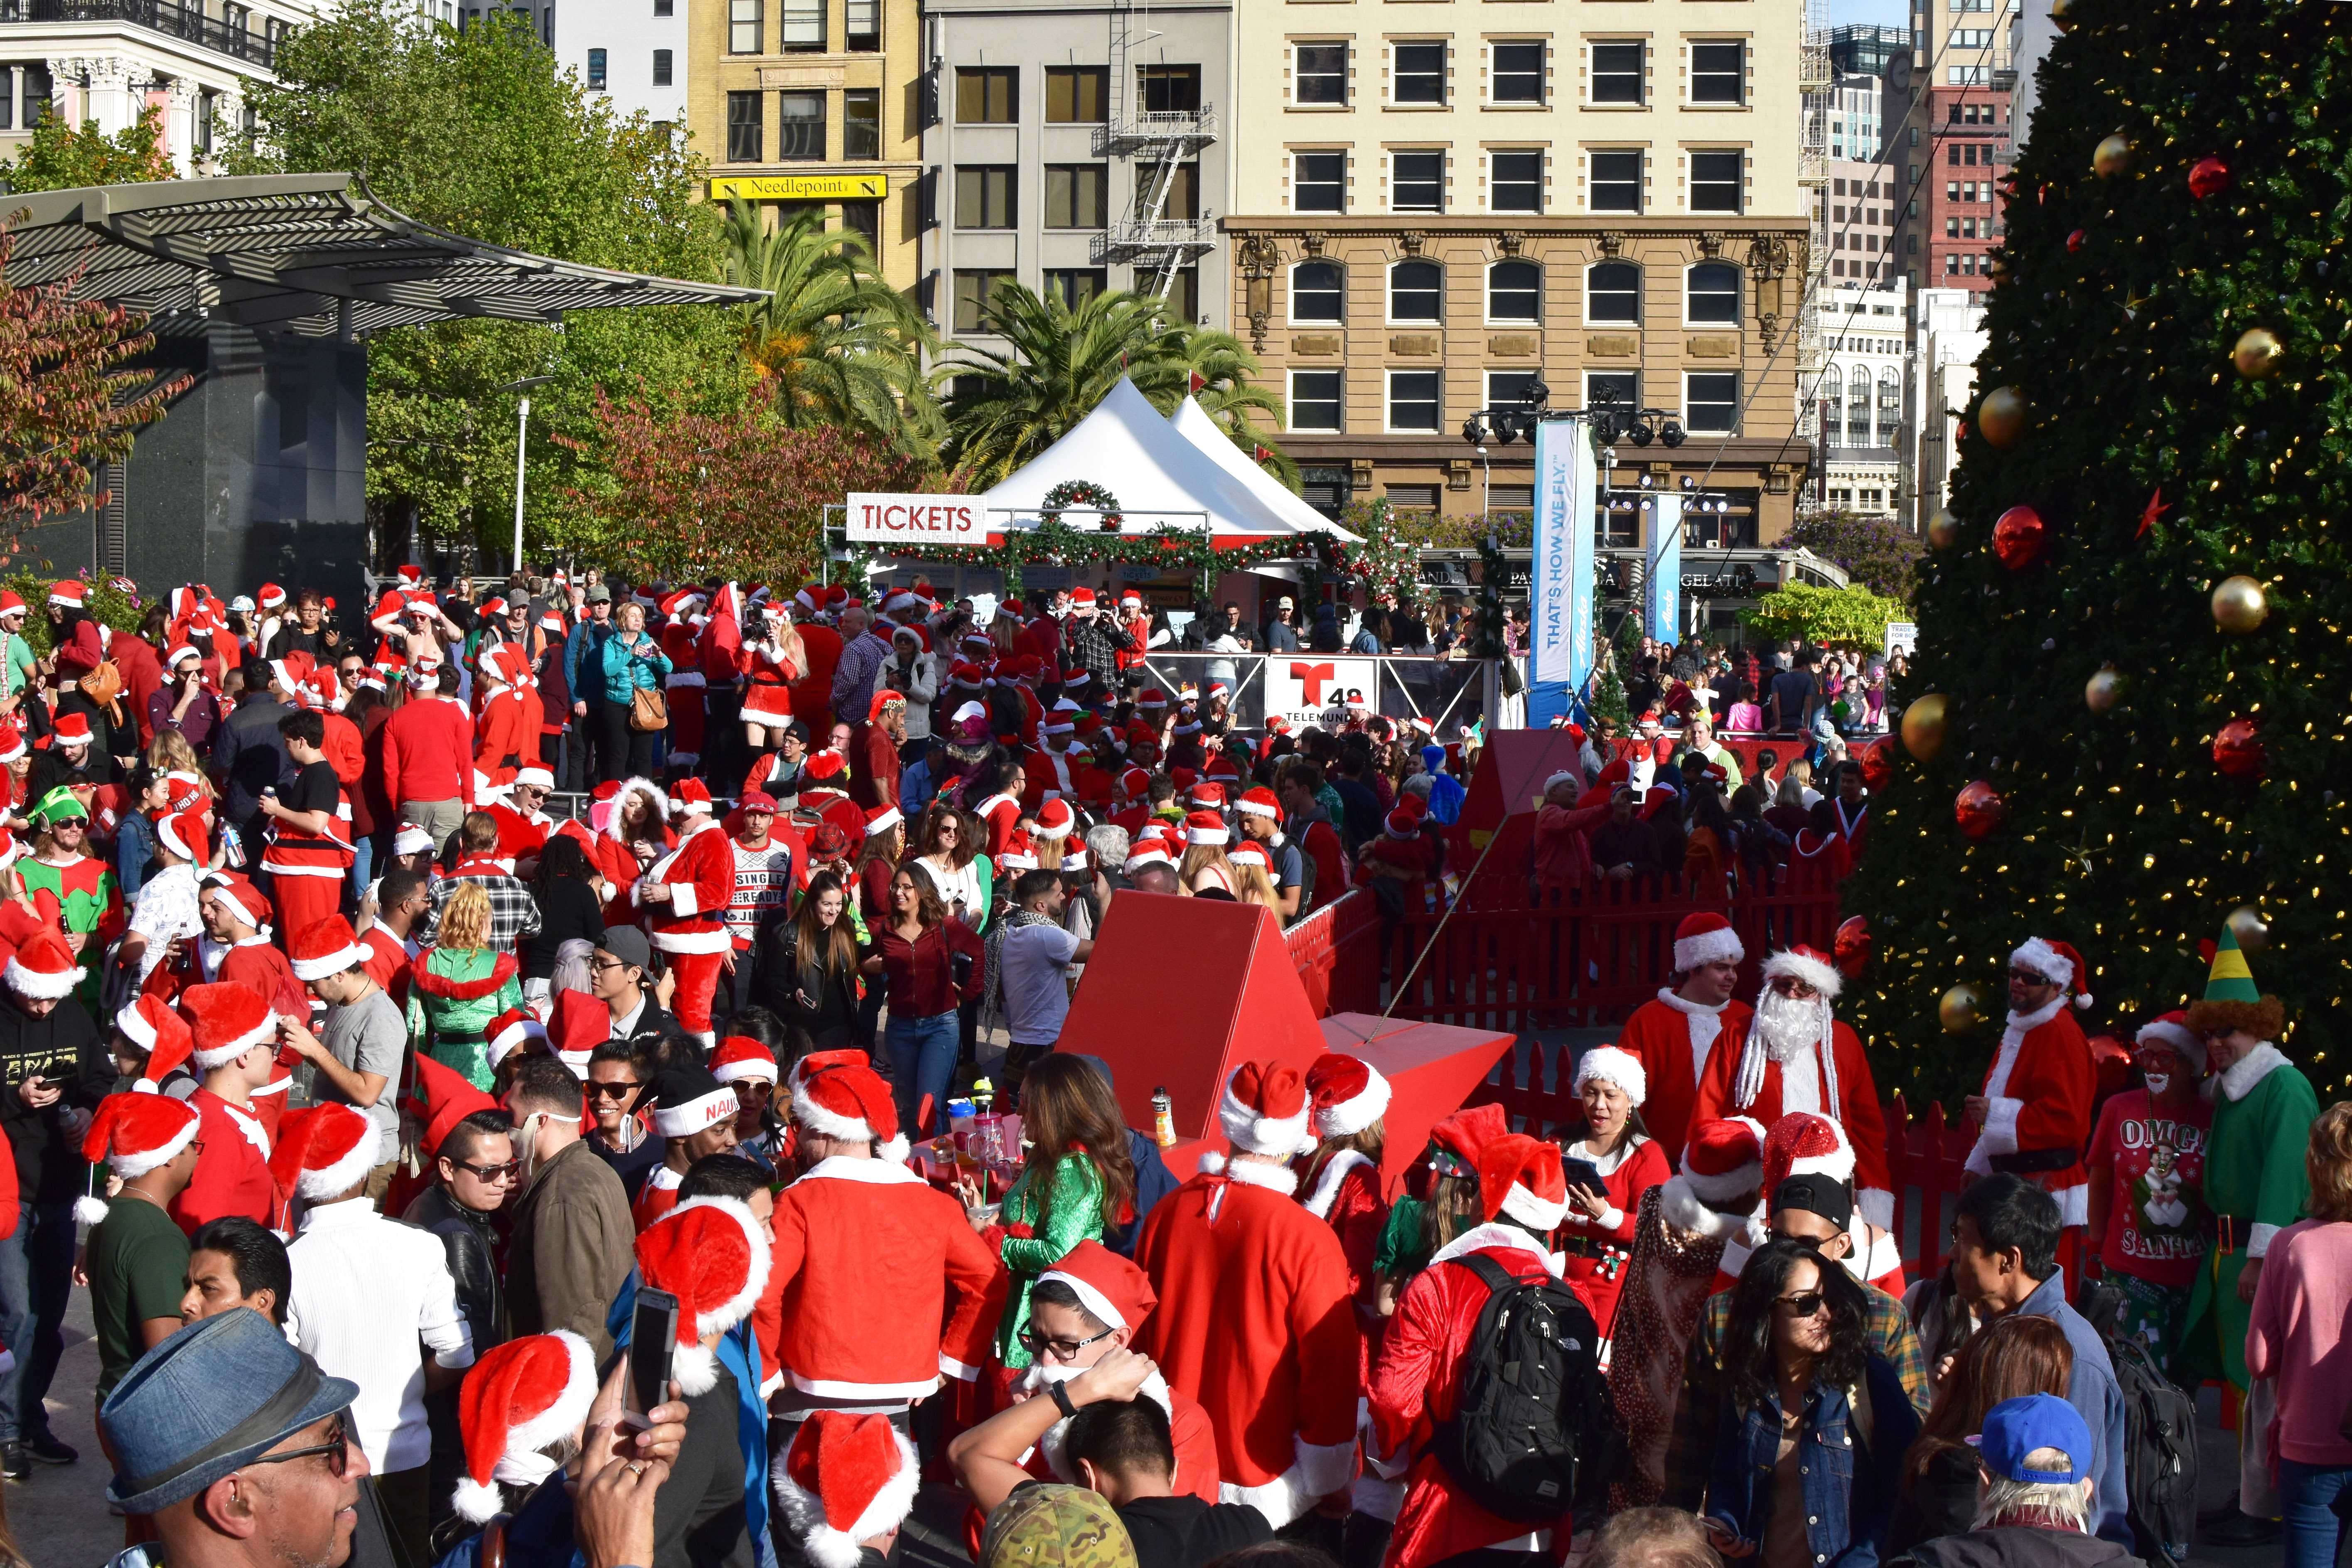 At least 200 hundred people dressed as Santa Claus gather for SantaCon 2017 at Union Square in San Francisco, Saturday, Dec. 9, 2017. (Garrett Bergthold/Golden Gate Xpress)